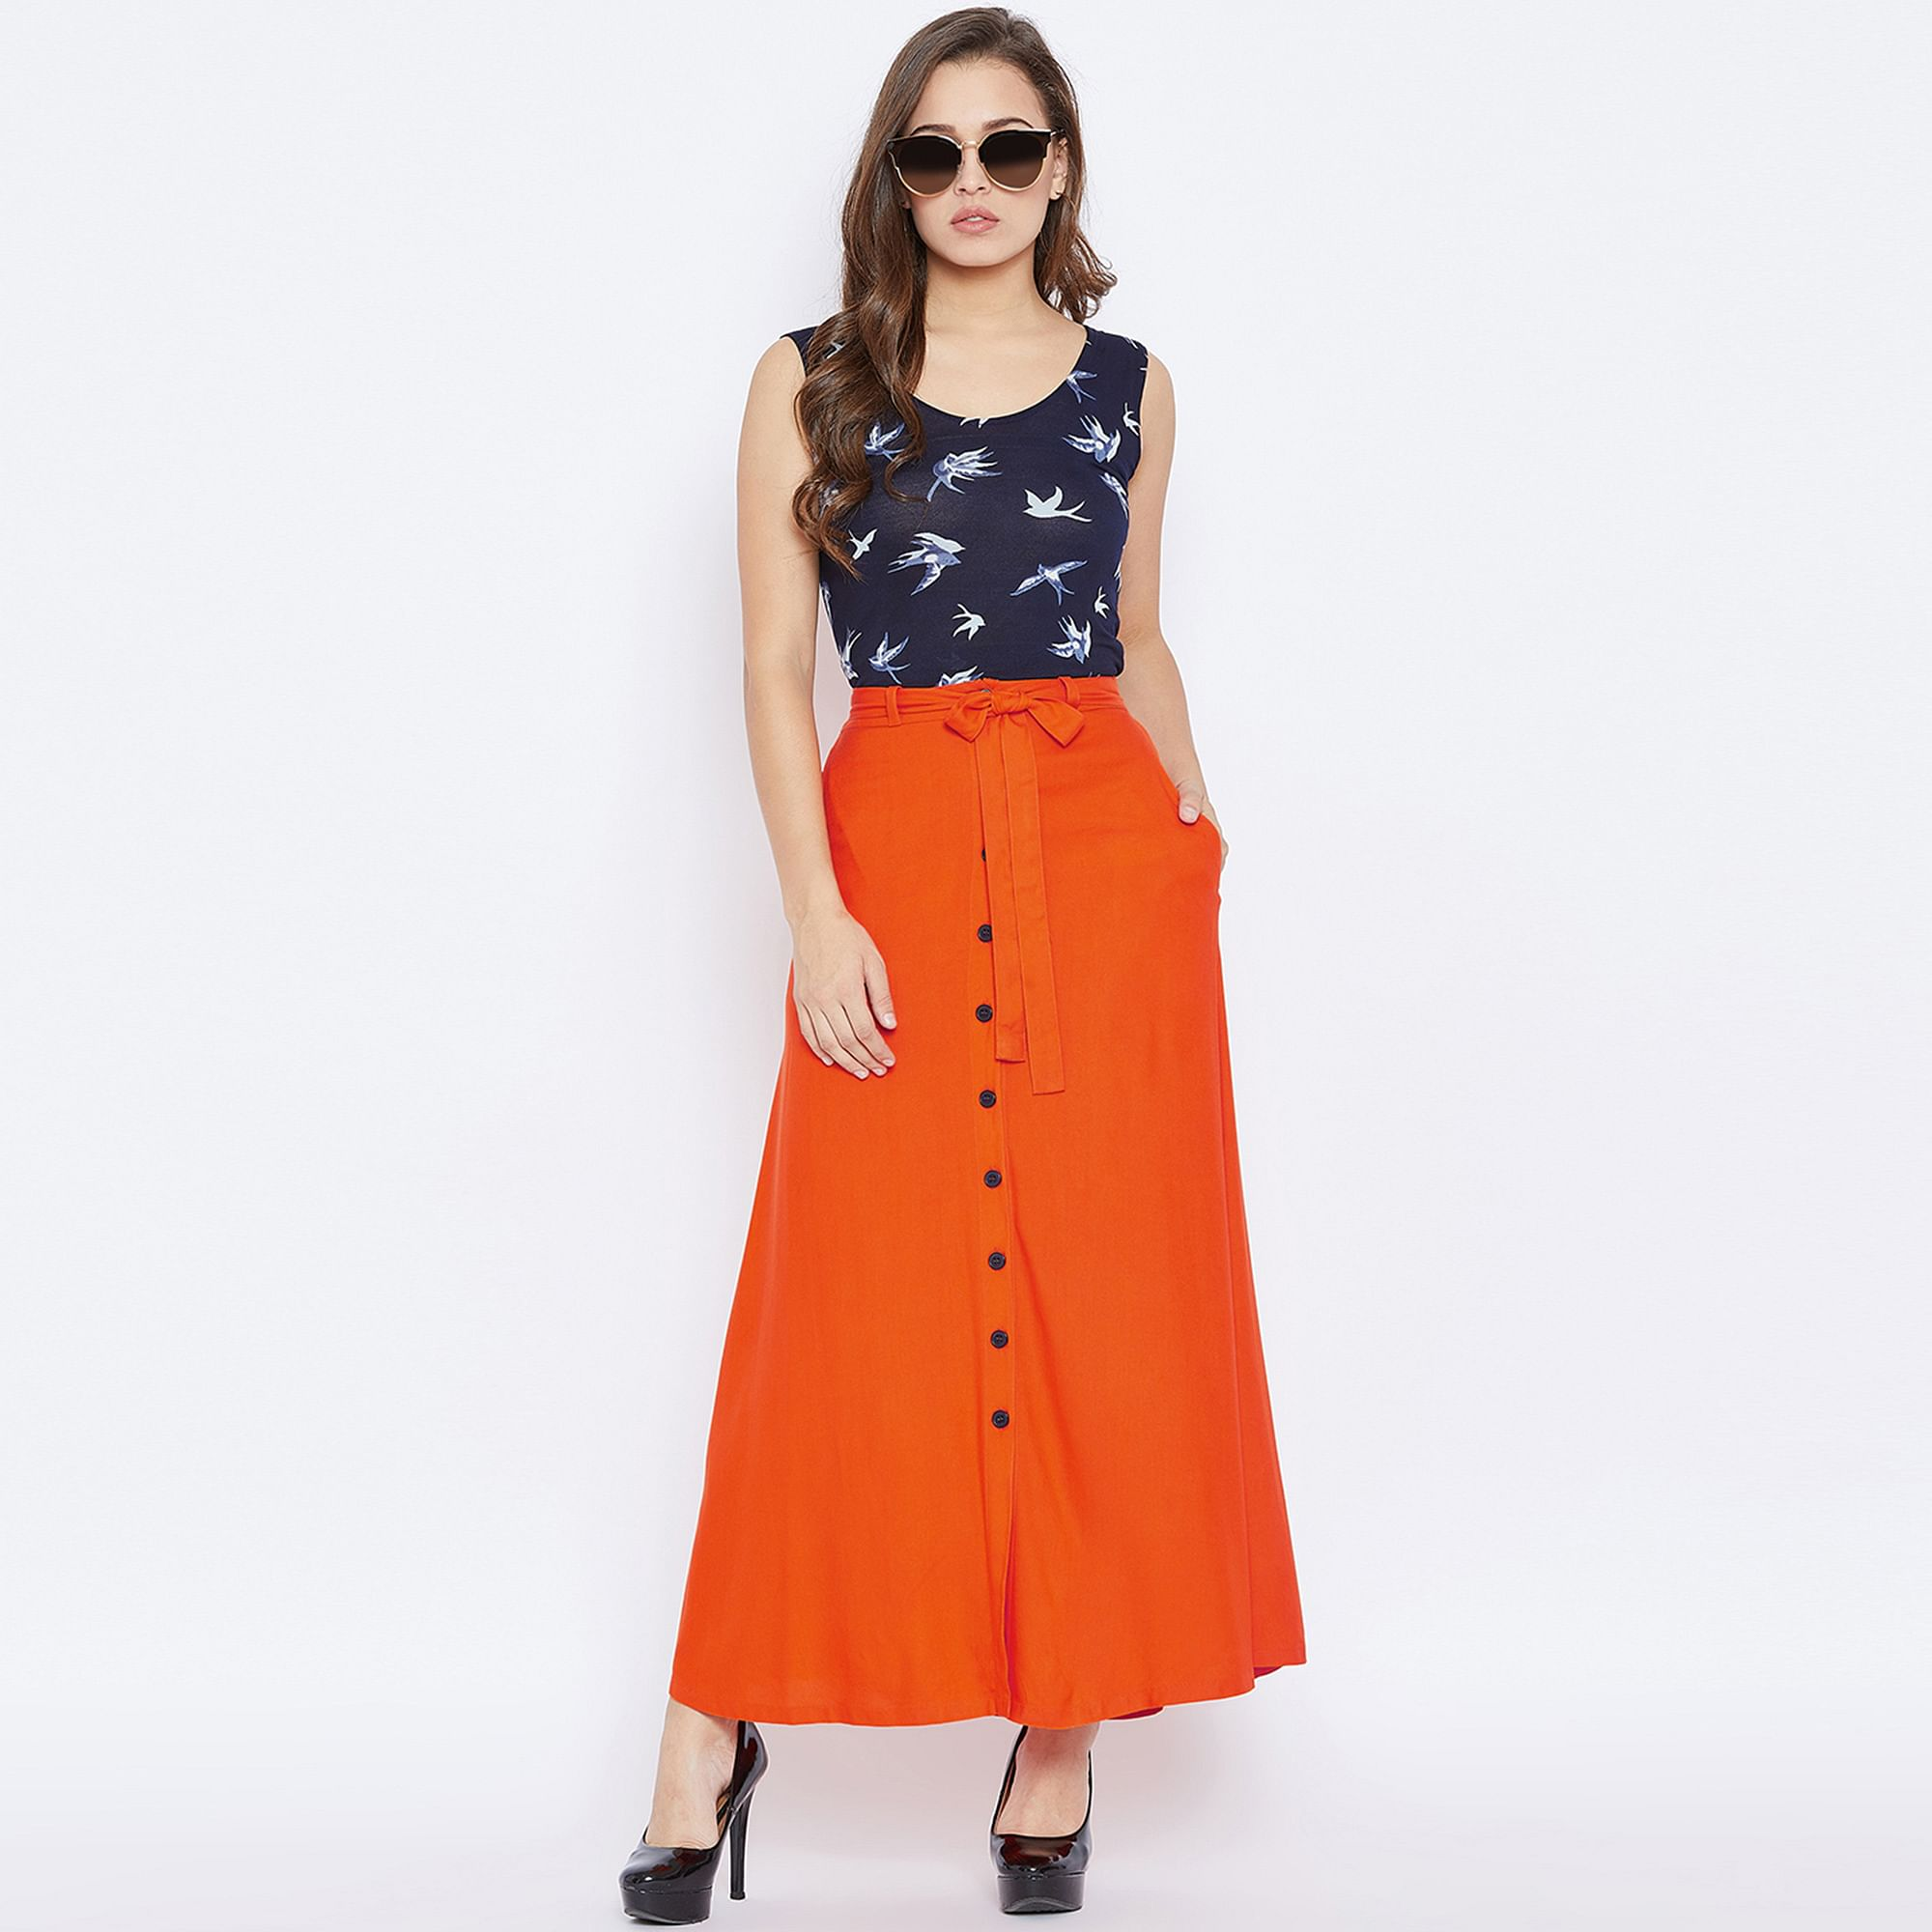 Captivating Orange Colored Casual Wear Solid Button Down A-Line Skirt